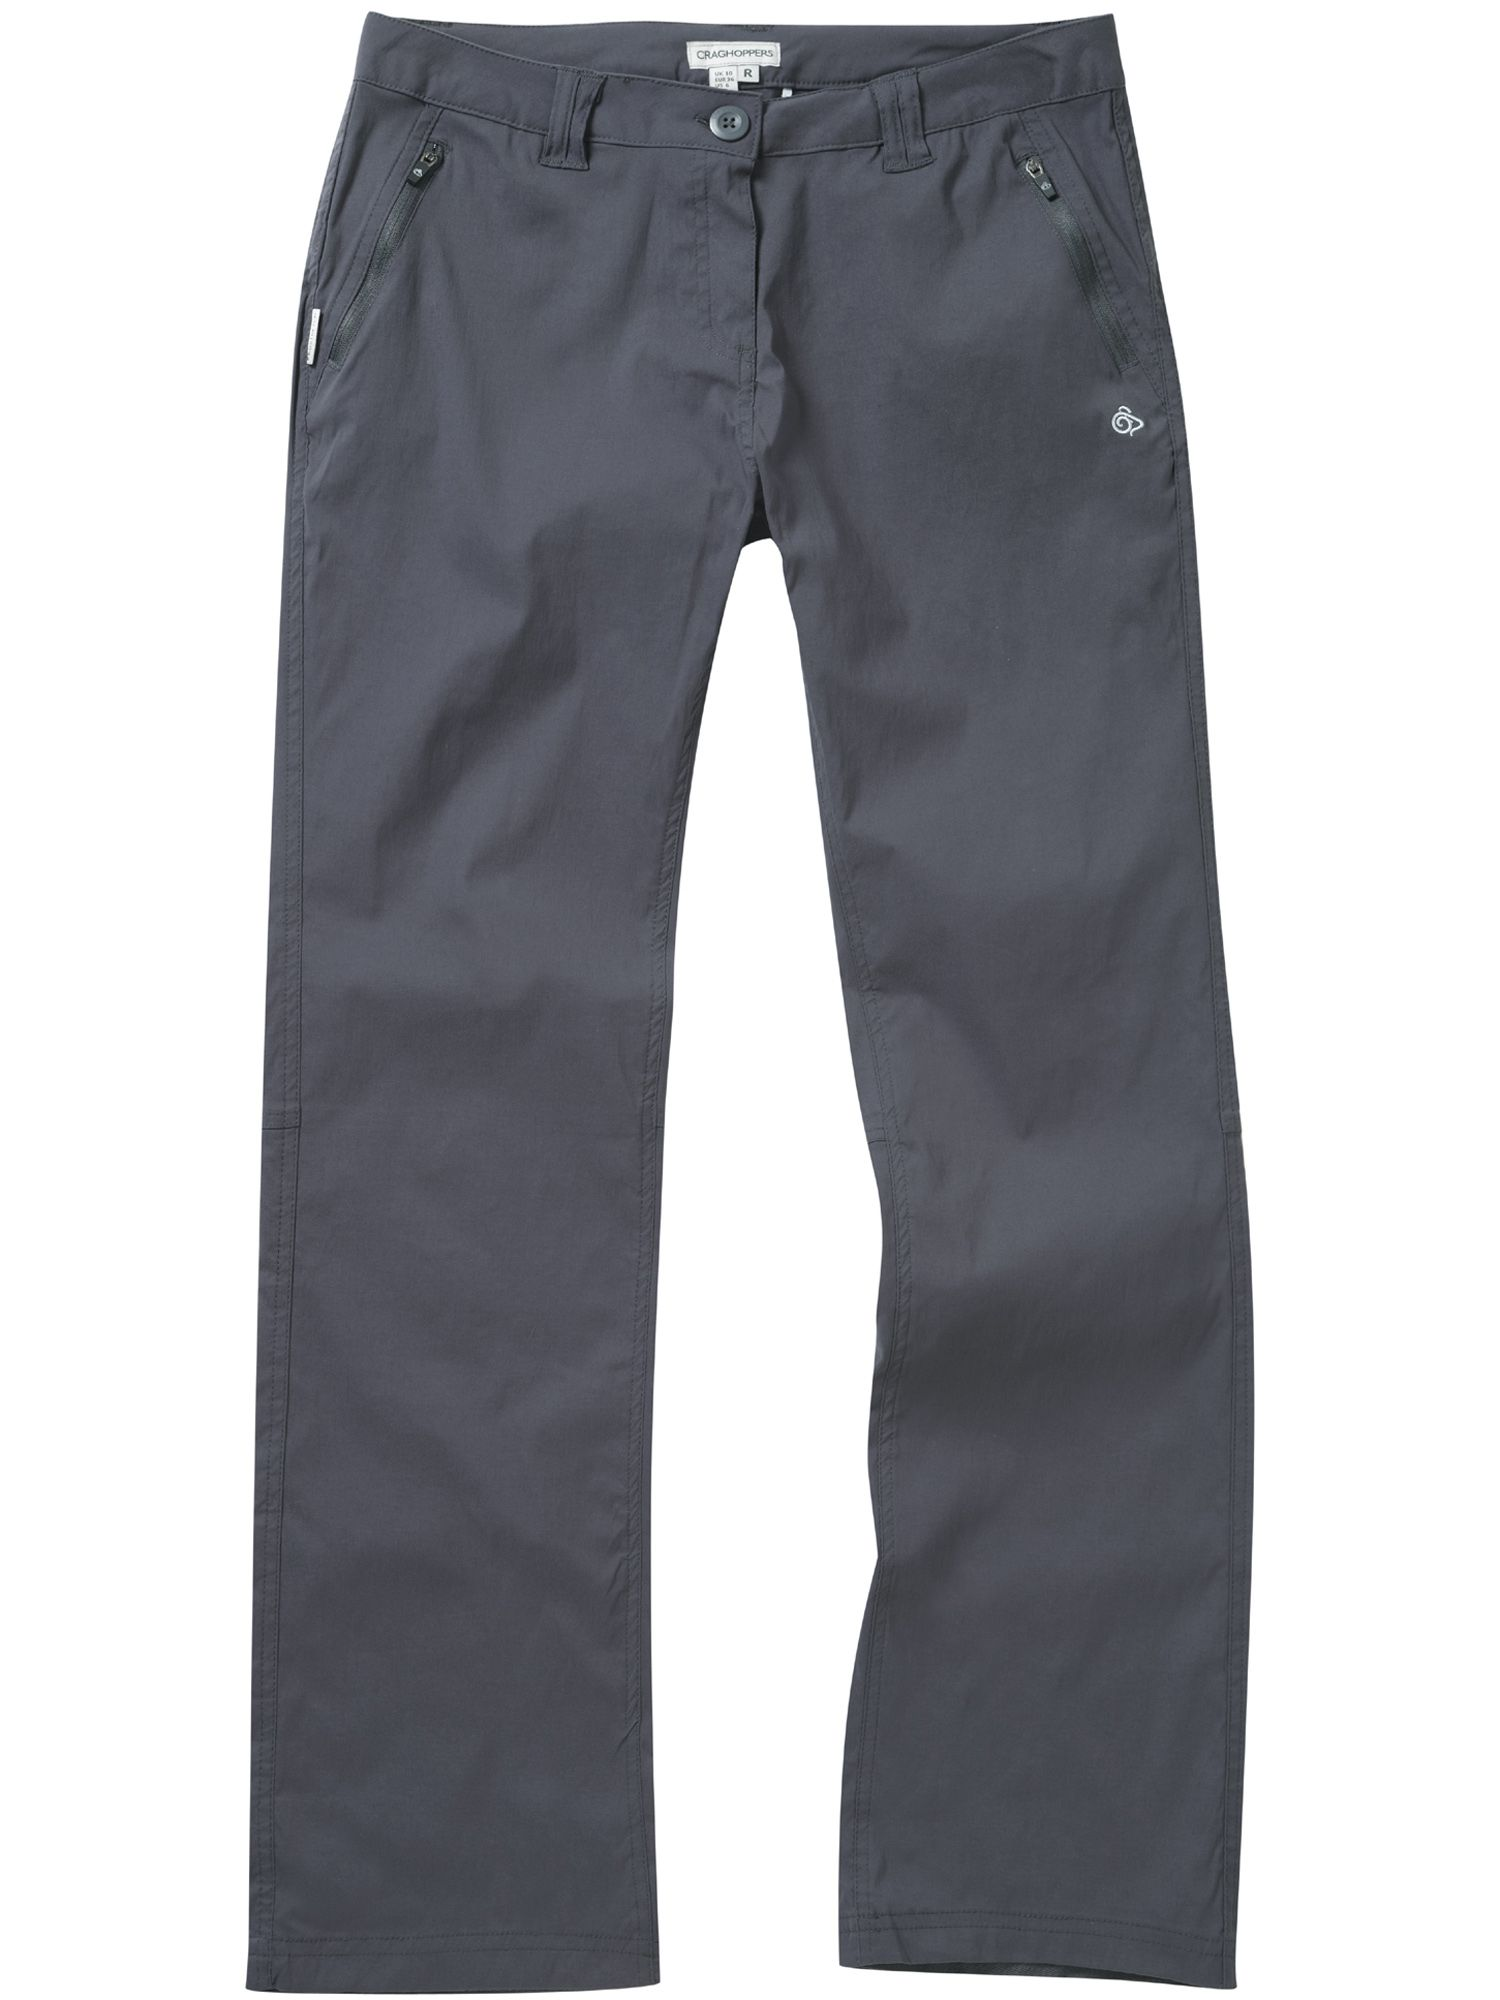 Craghoppers Kiwi Pro Winter-Lined Trousers, Grey